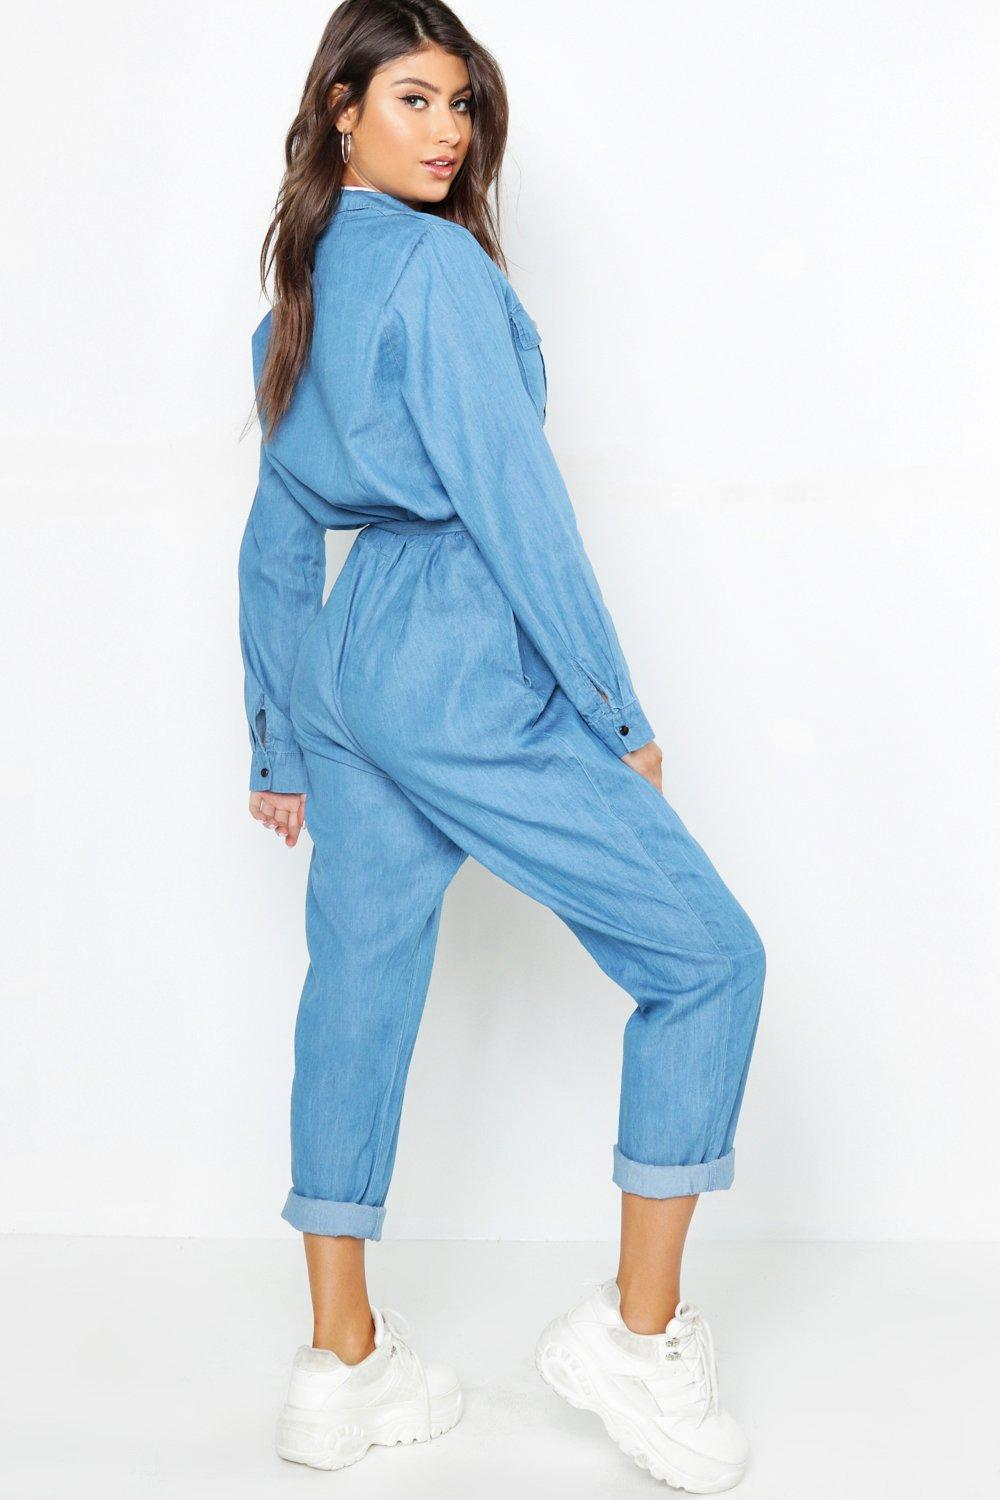 58397c68f1 Boohoo - Blue Tie Waist Utility Denim Boilersuit - Lyst. View fullscreen